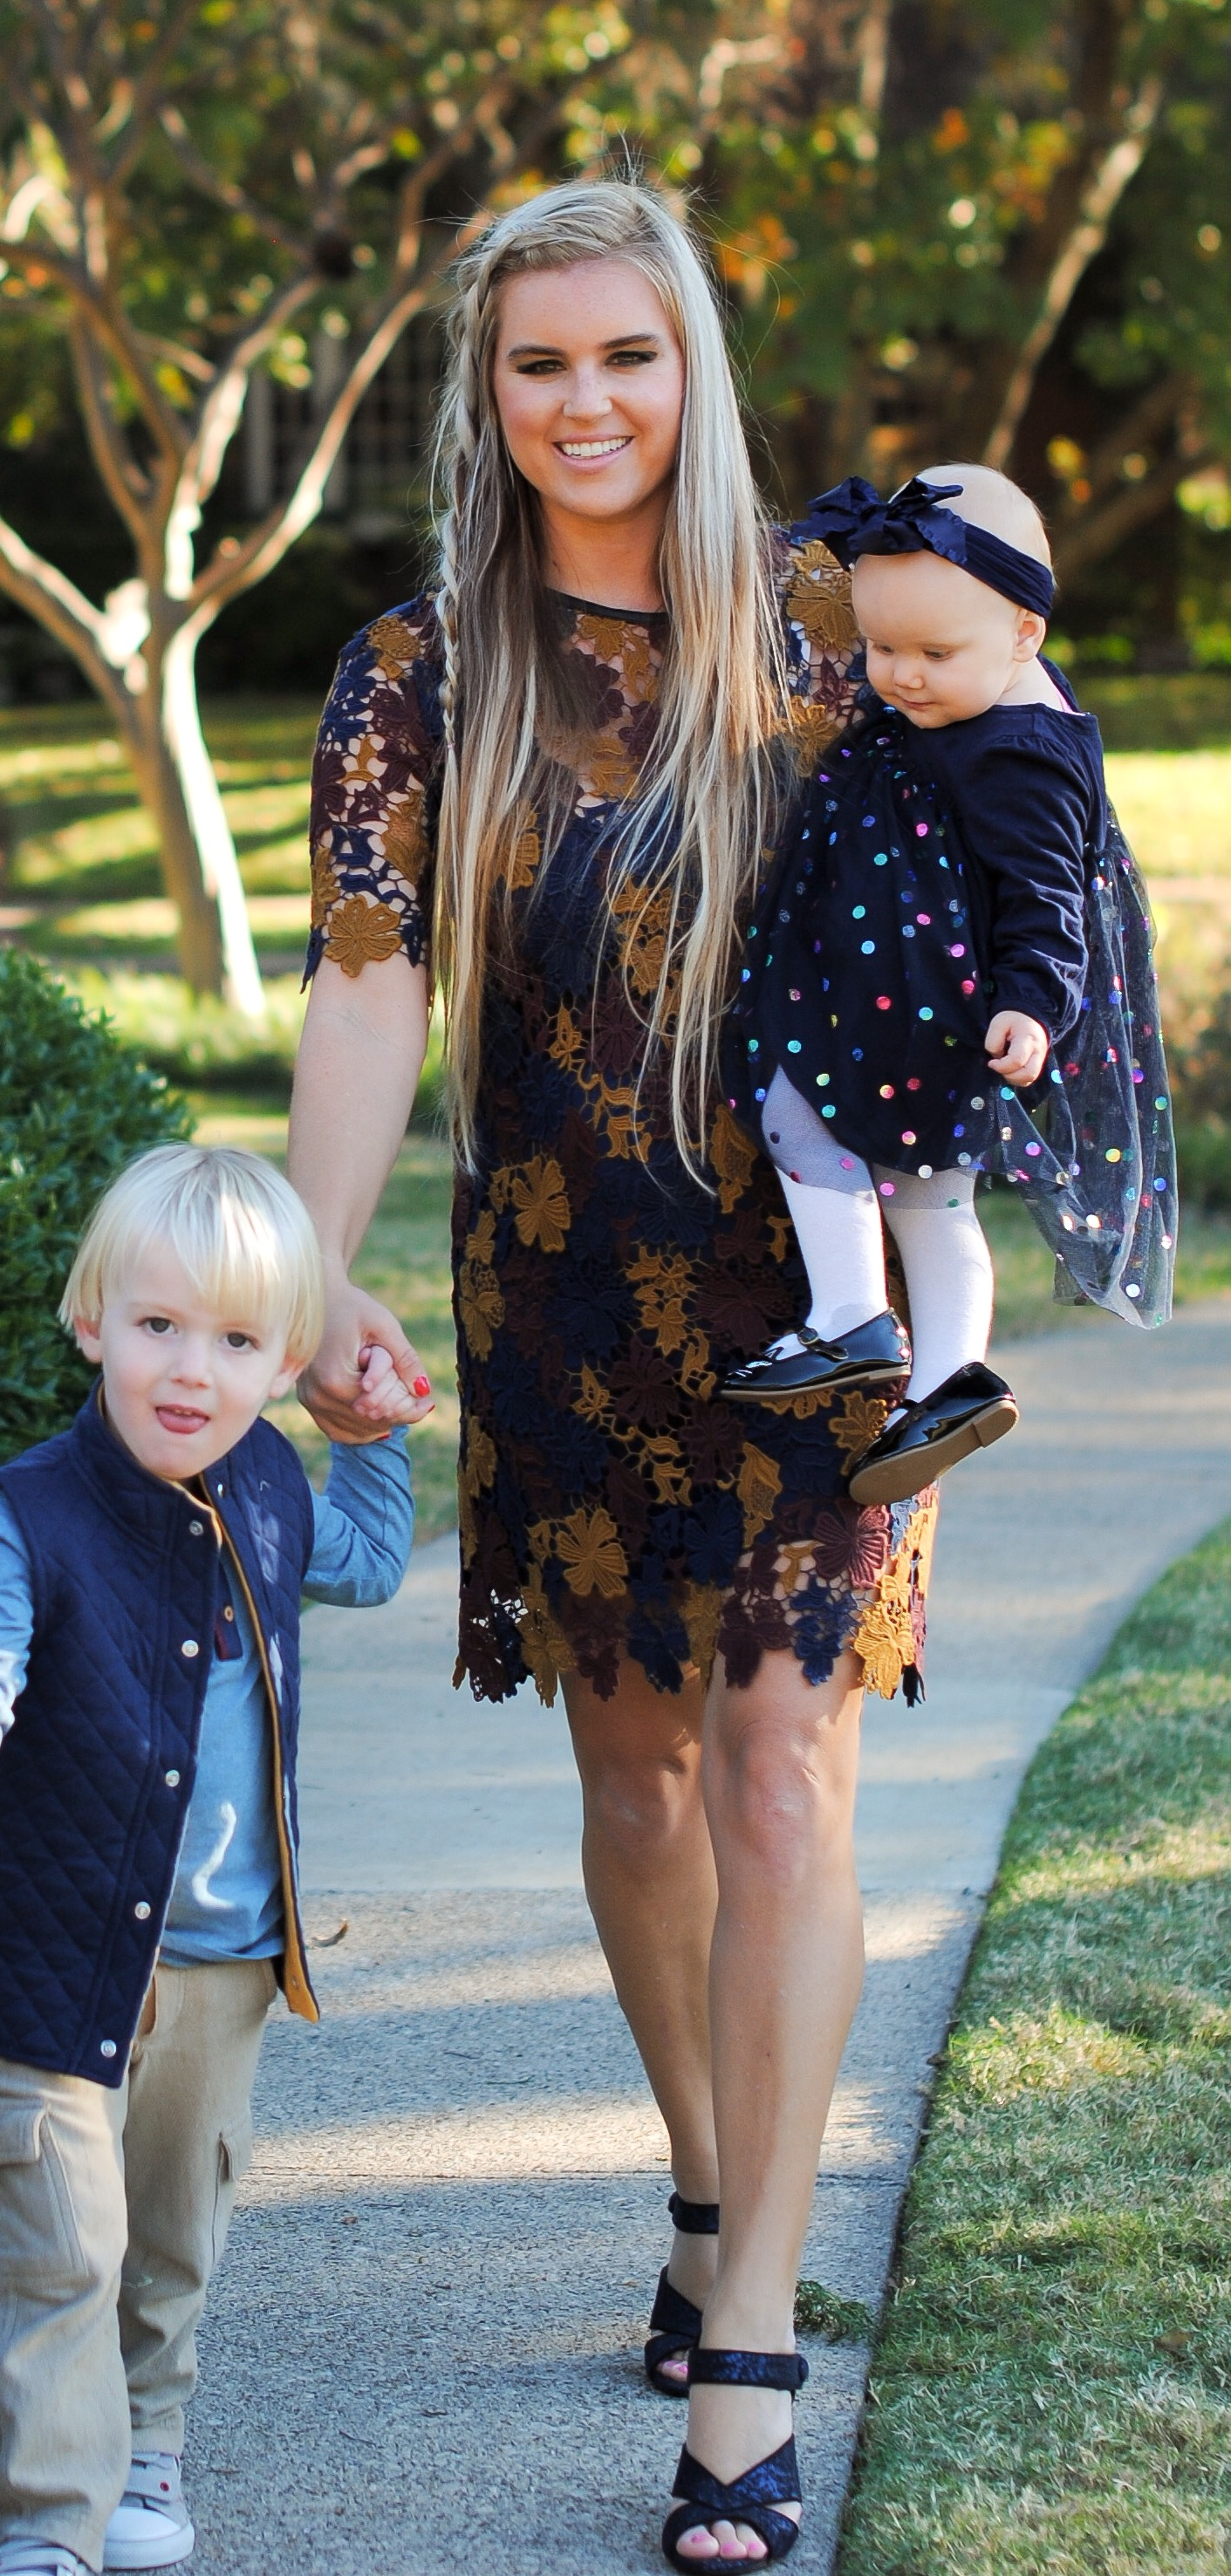 Alexander Bowman wearing Colored Organics vest and shirt. Stephany Bowman in a lace Nordstrom dress and Angelina Bowman GAP